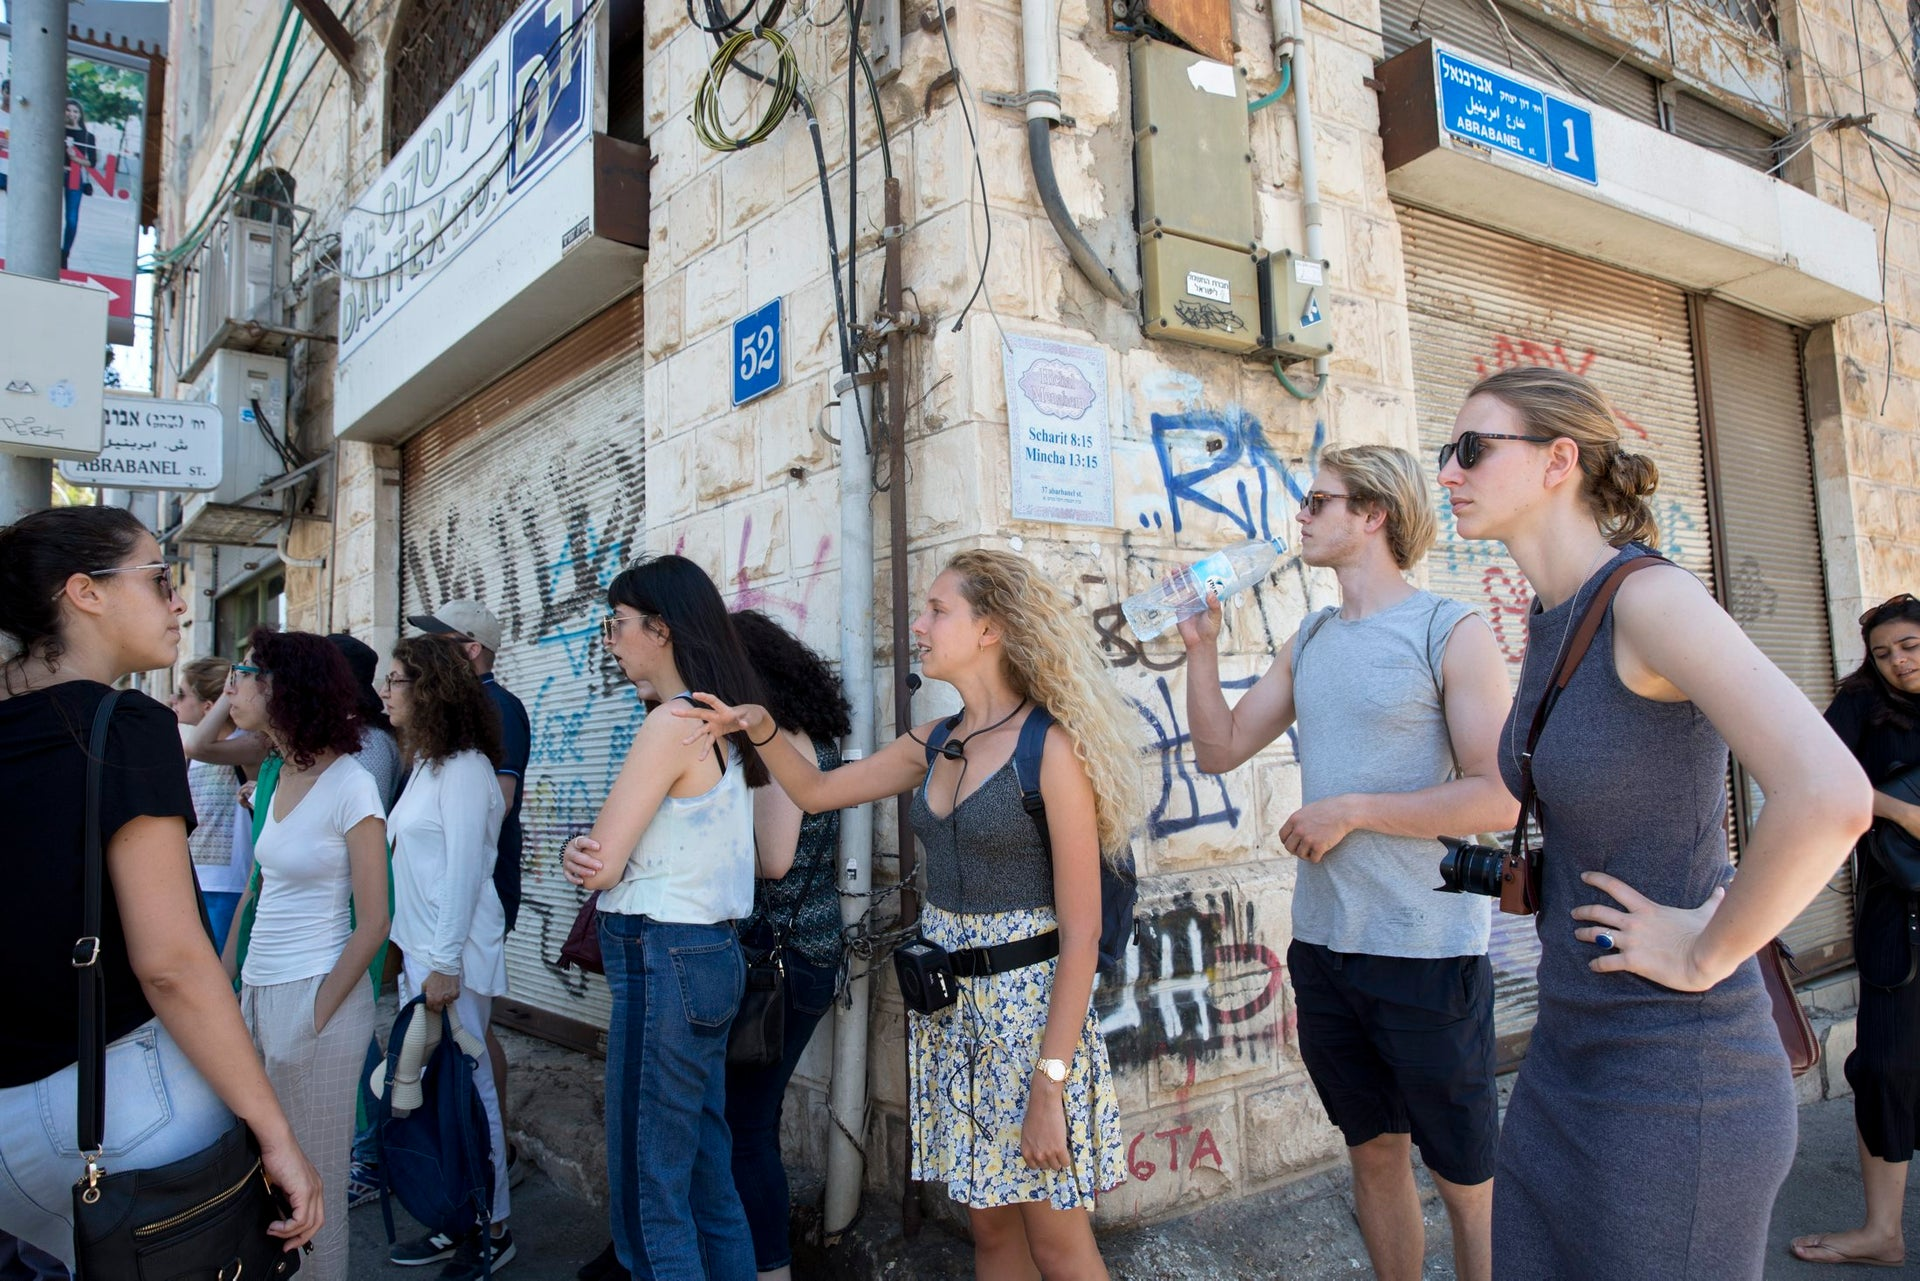 A guide talking to tourists on a corner in the Florentin neighborhood. This is just one of many groups in the area.